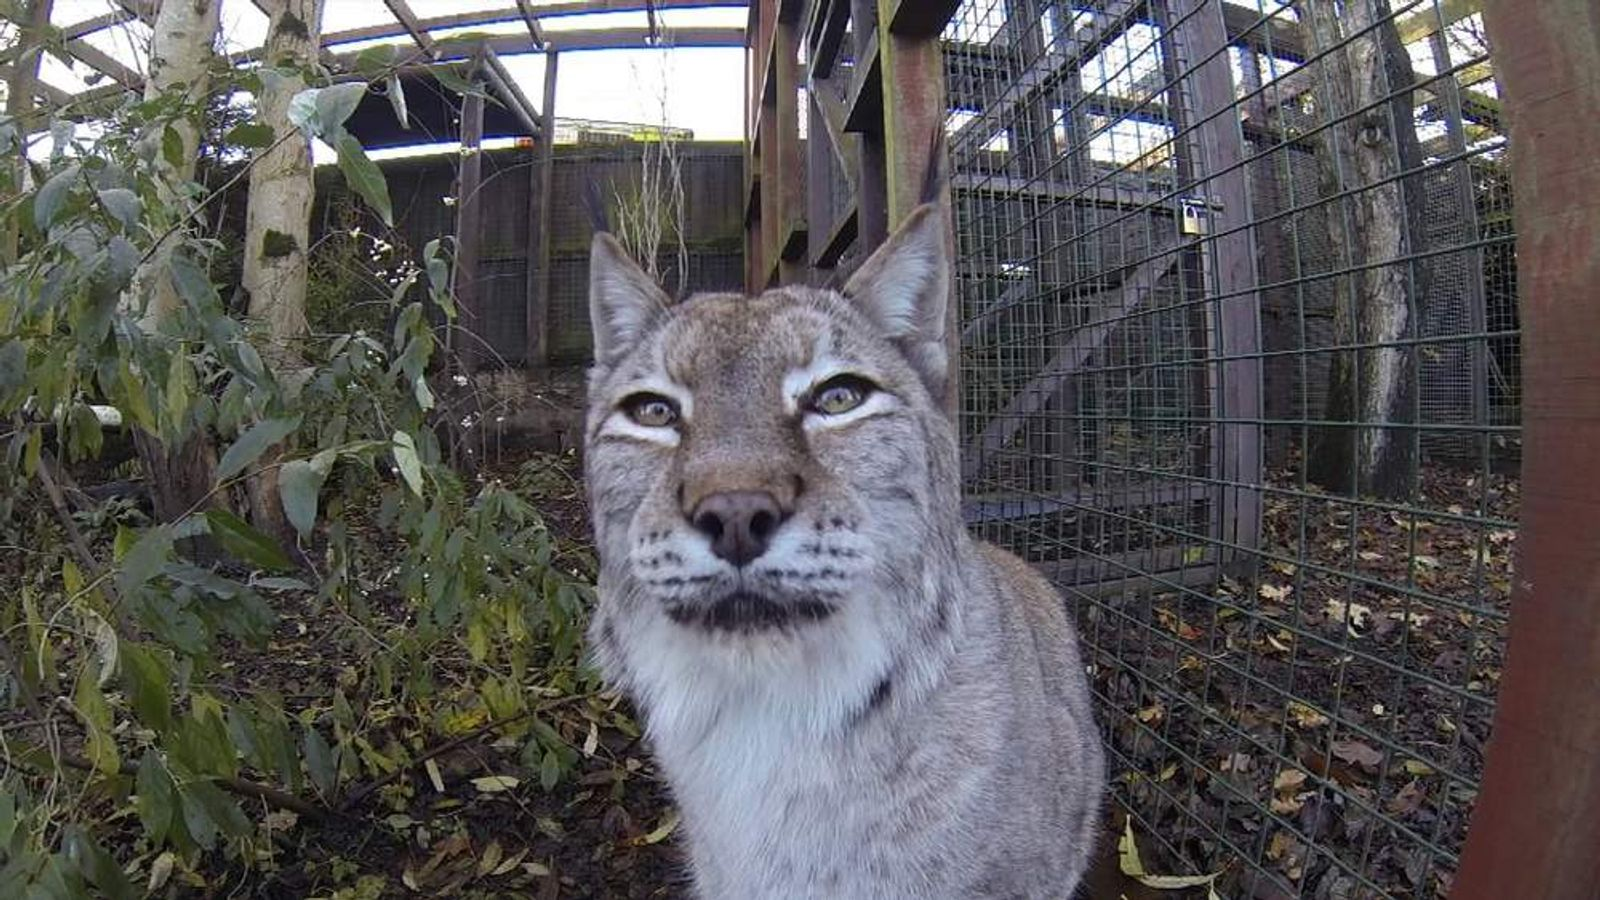 Lynx may be reintroduced into the wild in Scotland